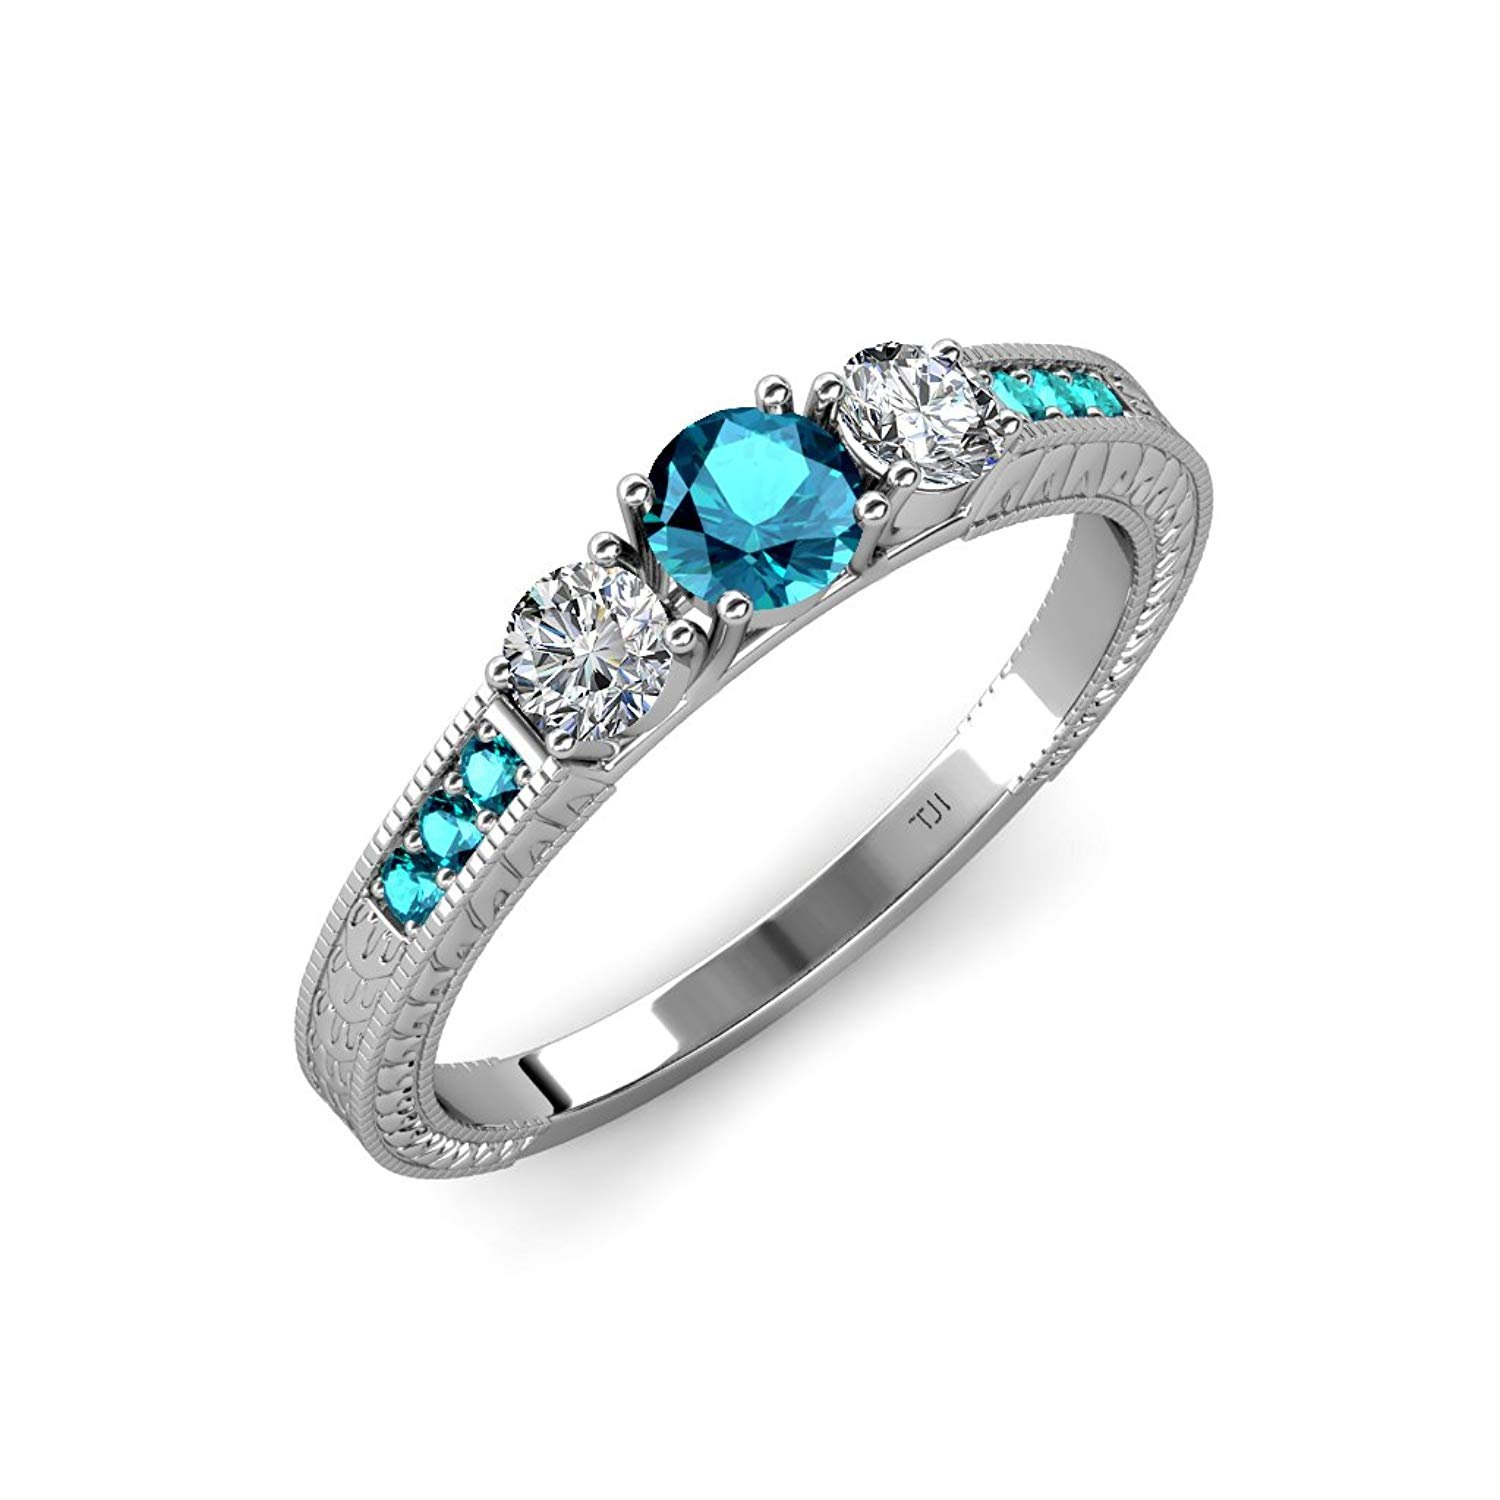 London Blue Topaz and Diamond 3 Stone Ring with Side London Blue Topaz 0.85 ct tw 14K White Gold.size 8.0 by TriJewels